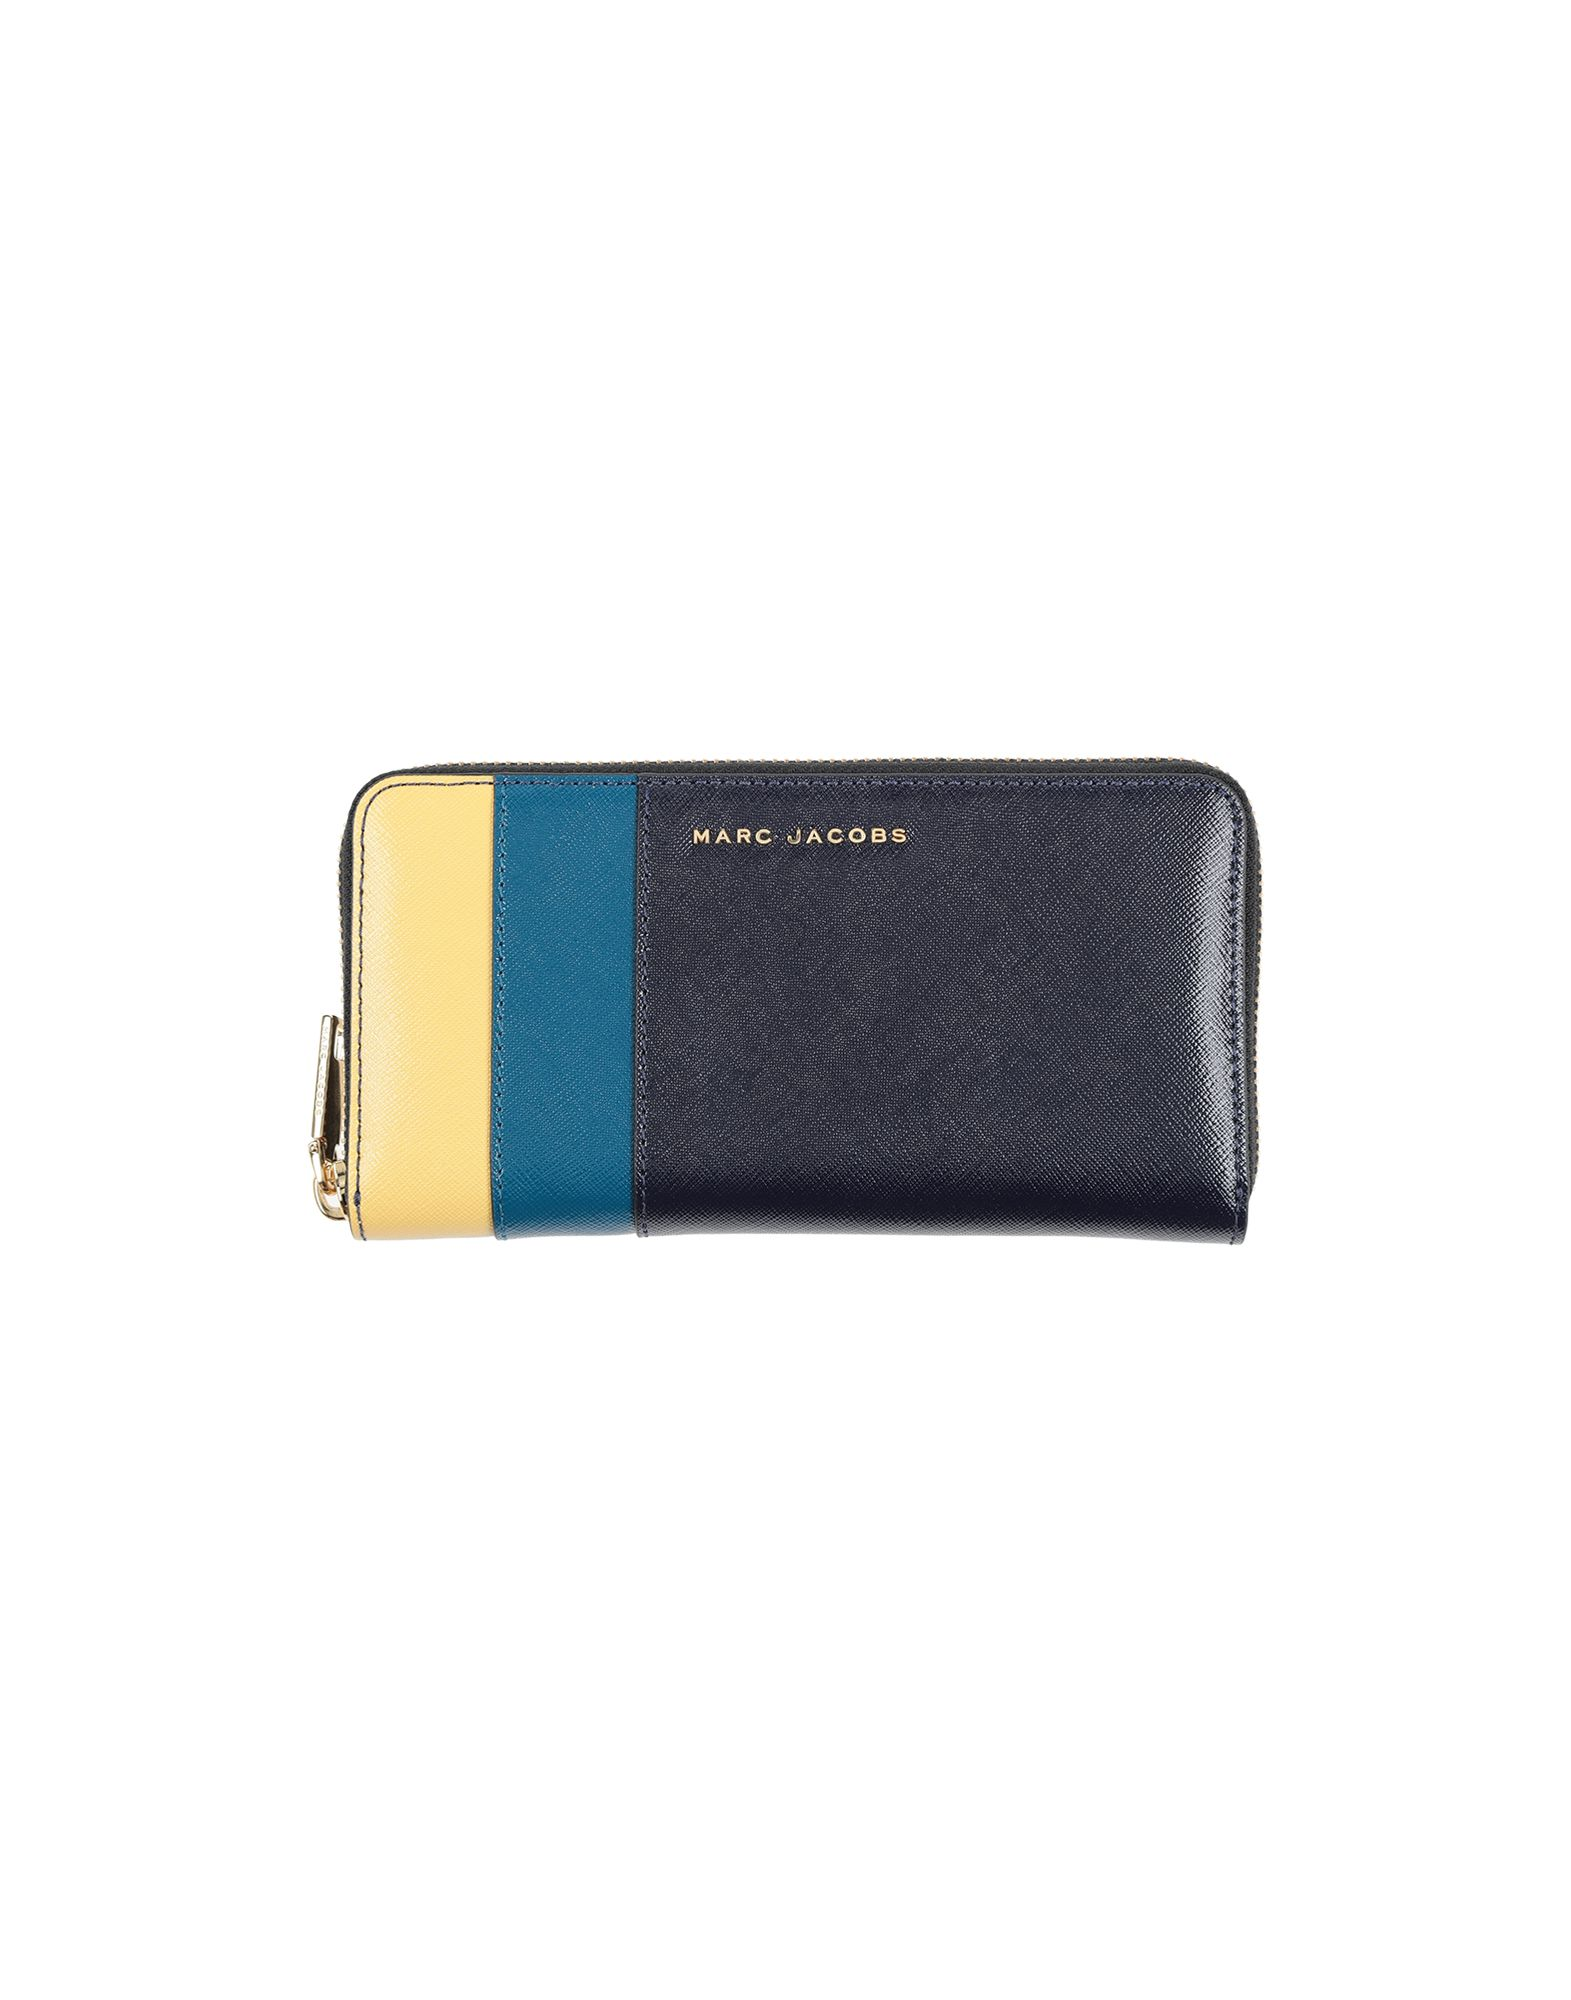 cheap for discount b6f77 3ef43 MARC JACOBS Wallet - Small Leather Goods | YOOX.COM